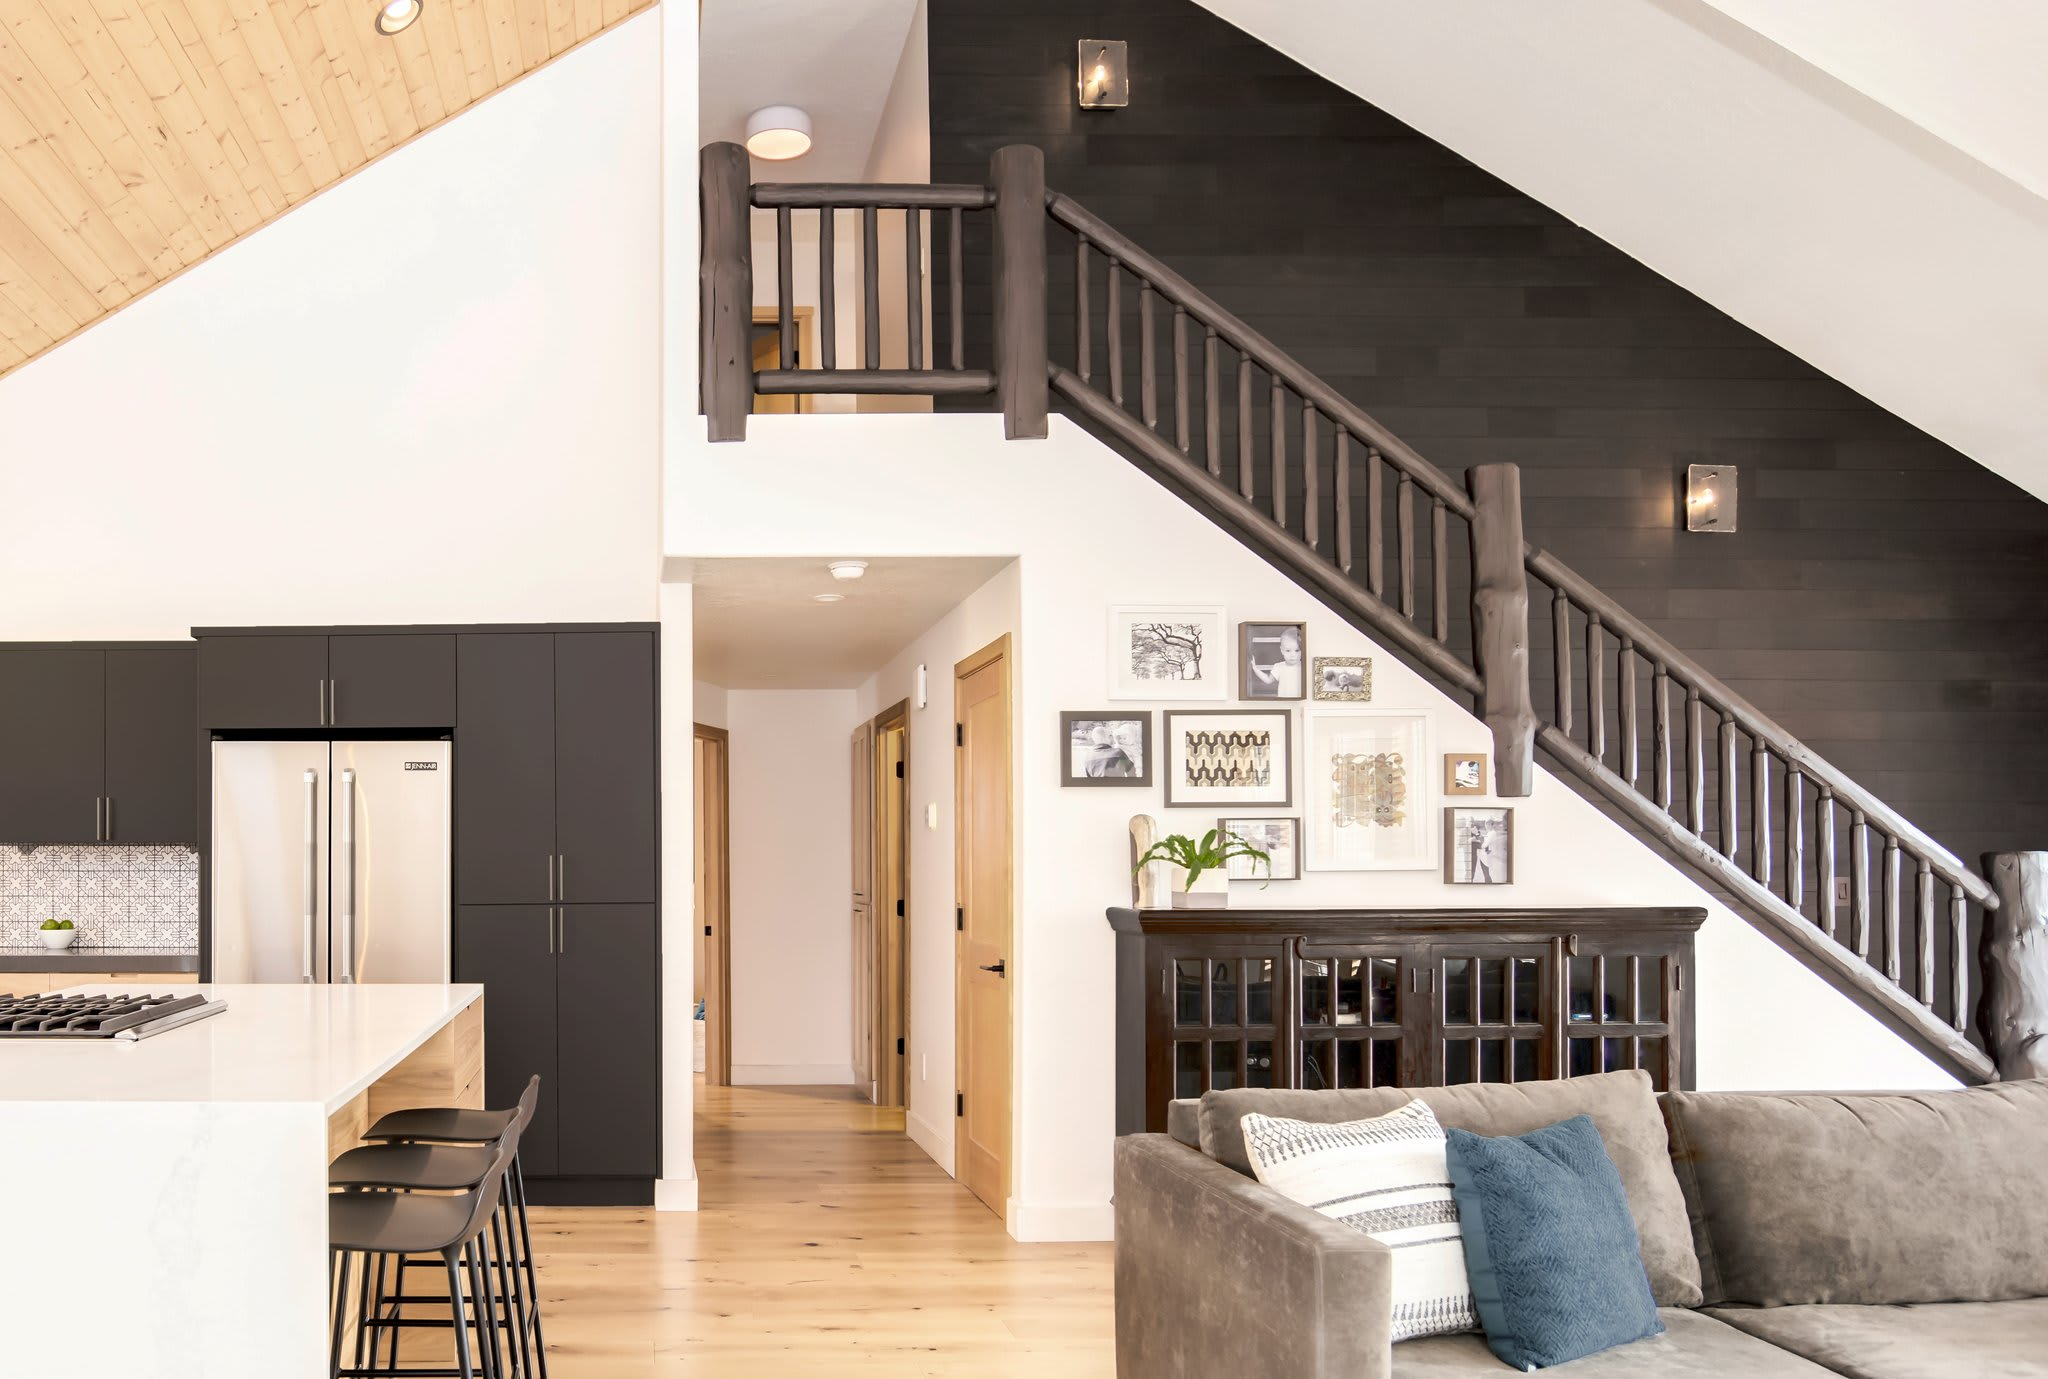 Pj Hurst home design featuring light and dark wood accents including Stikwood Charcoal peel and stick sustainable wood wall planks.